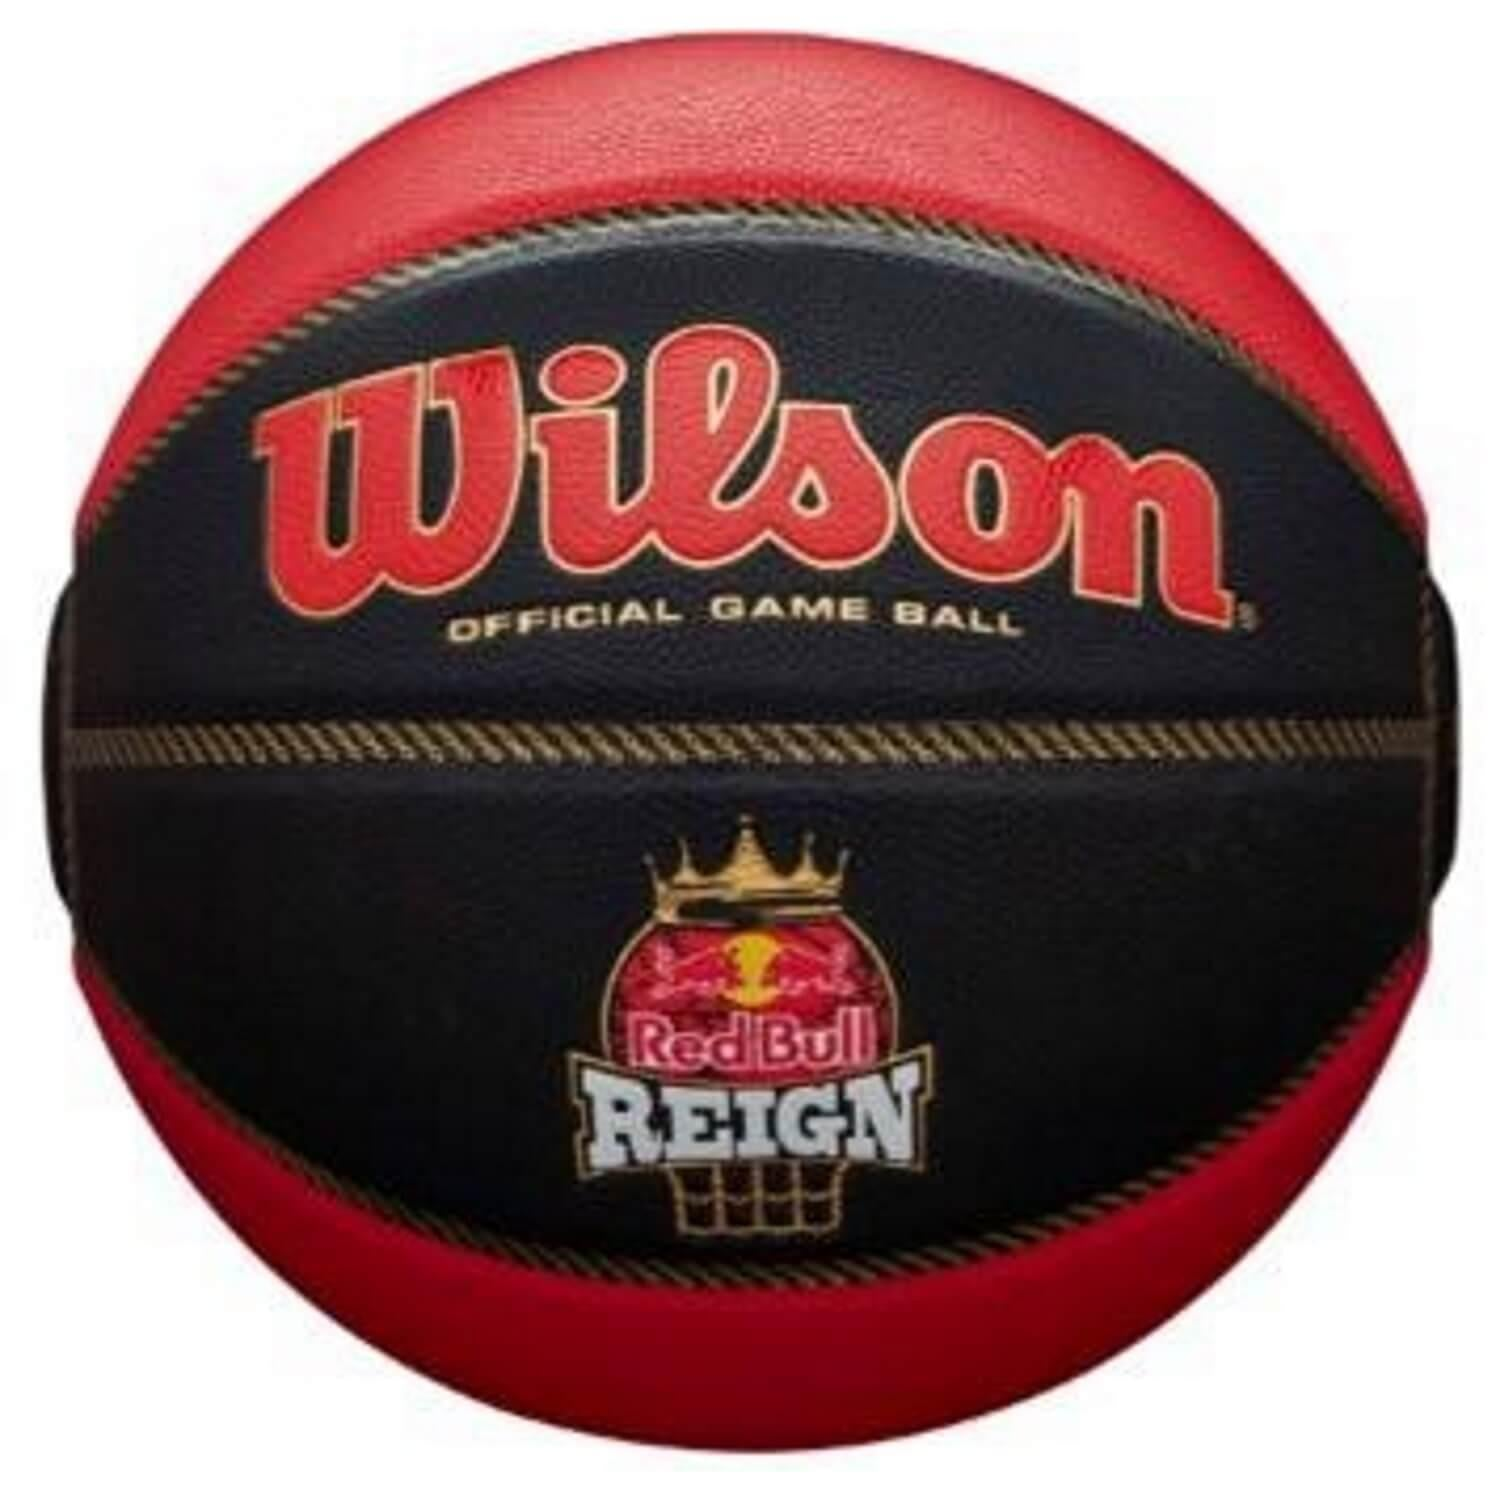 Wilson Red Bull Reign 3x3 Basketball